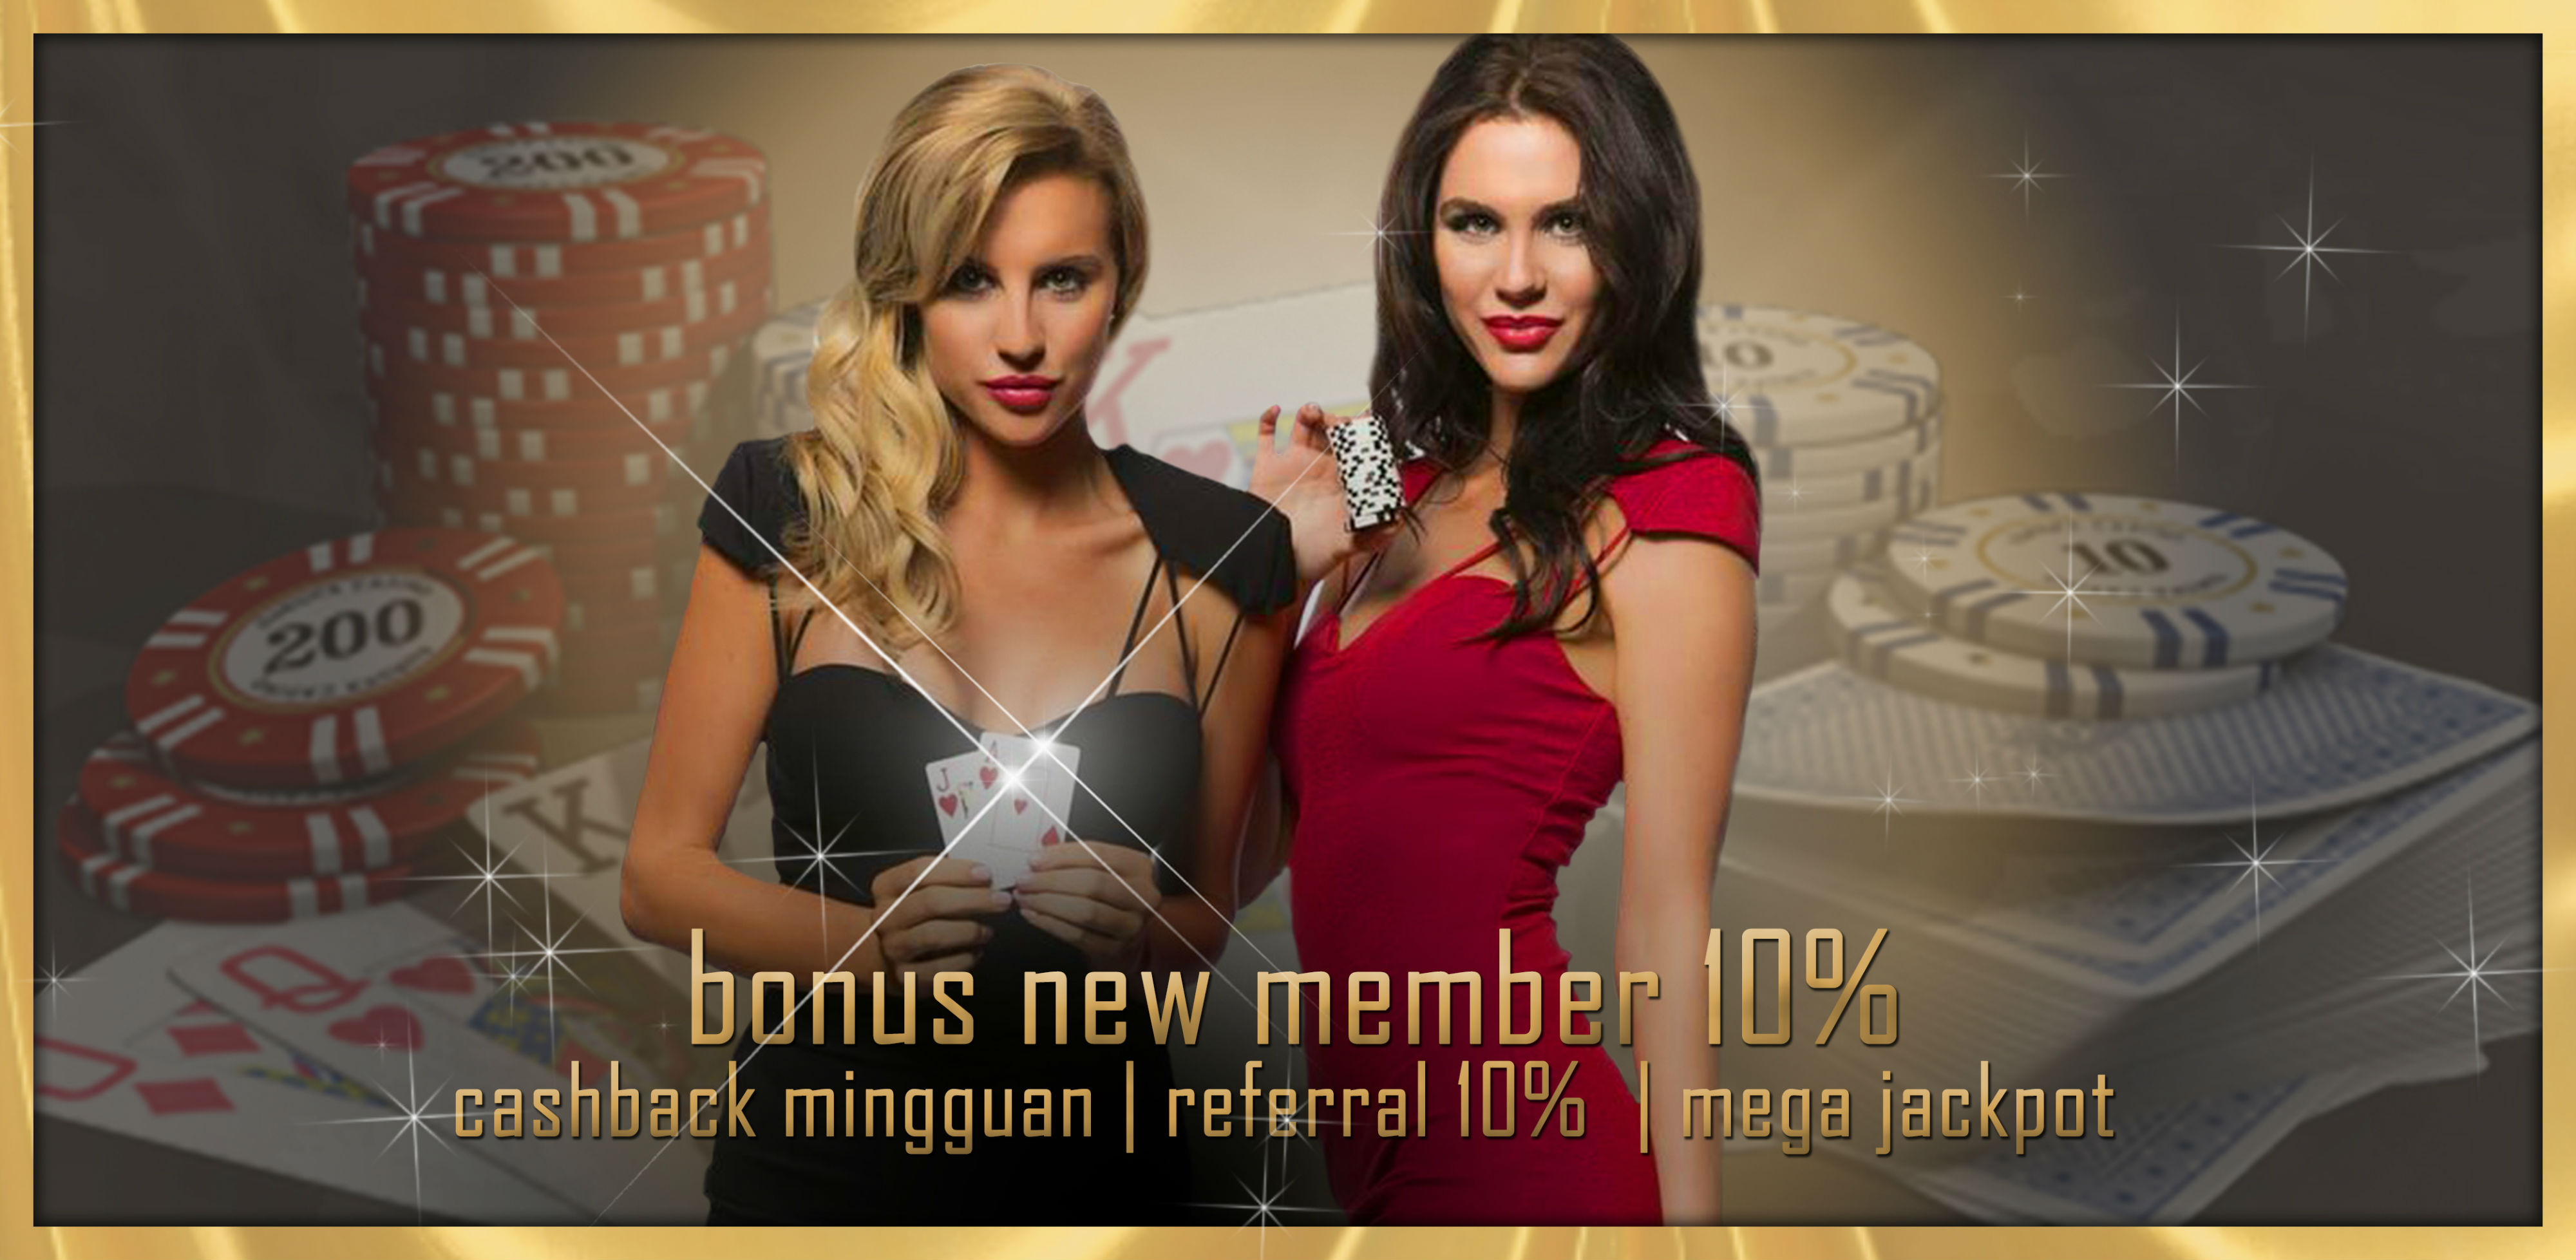 Agen Poker Online Di Indonesia